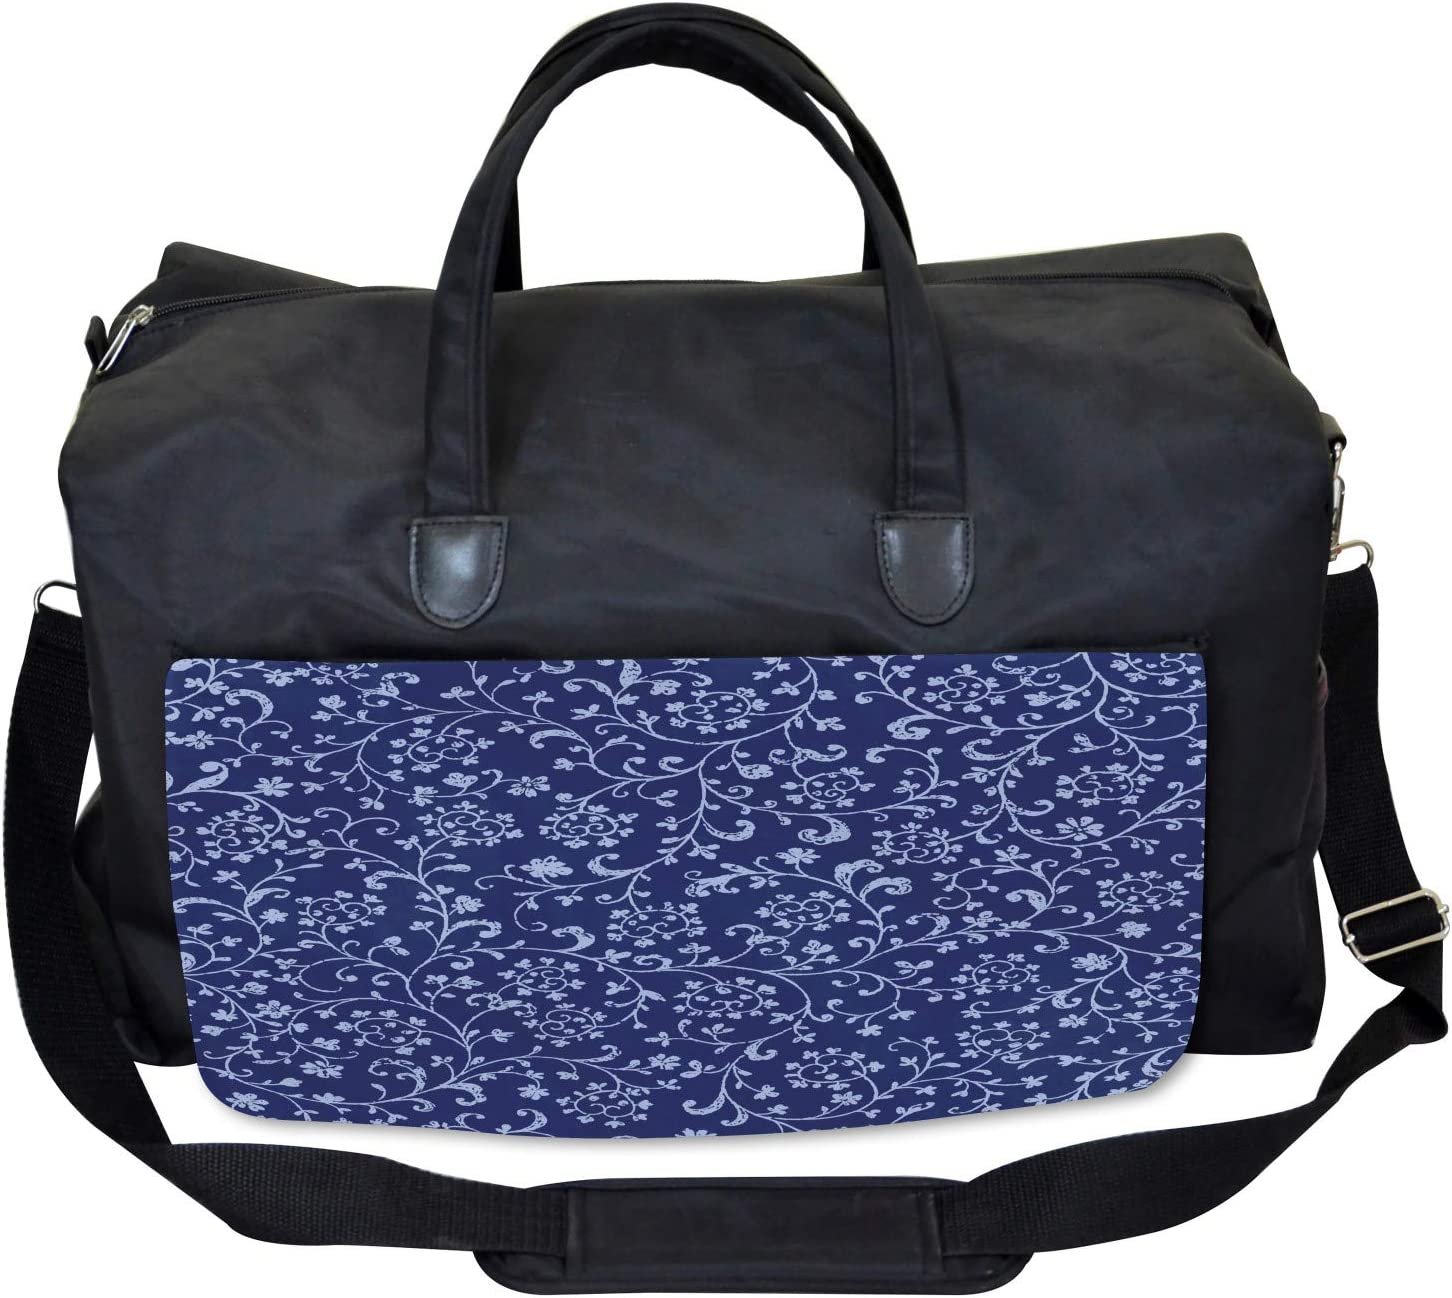 Ambesonne Floral Gym Bag Large Weekender Carry-on Baroque Classic Damask